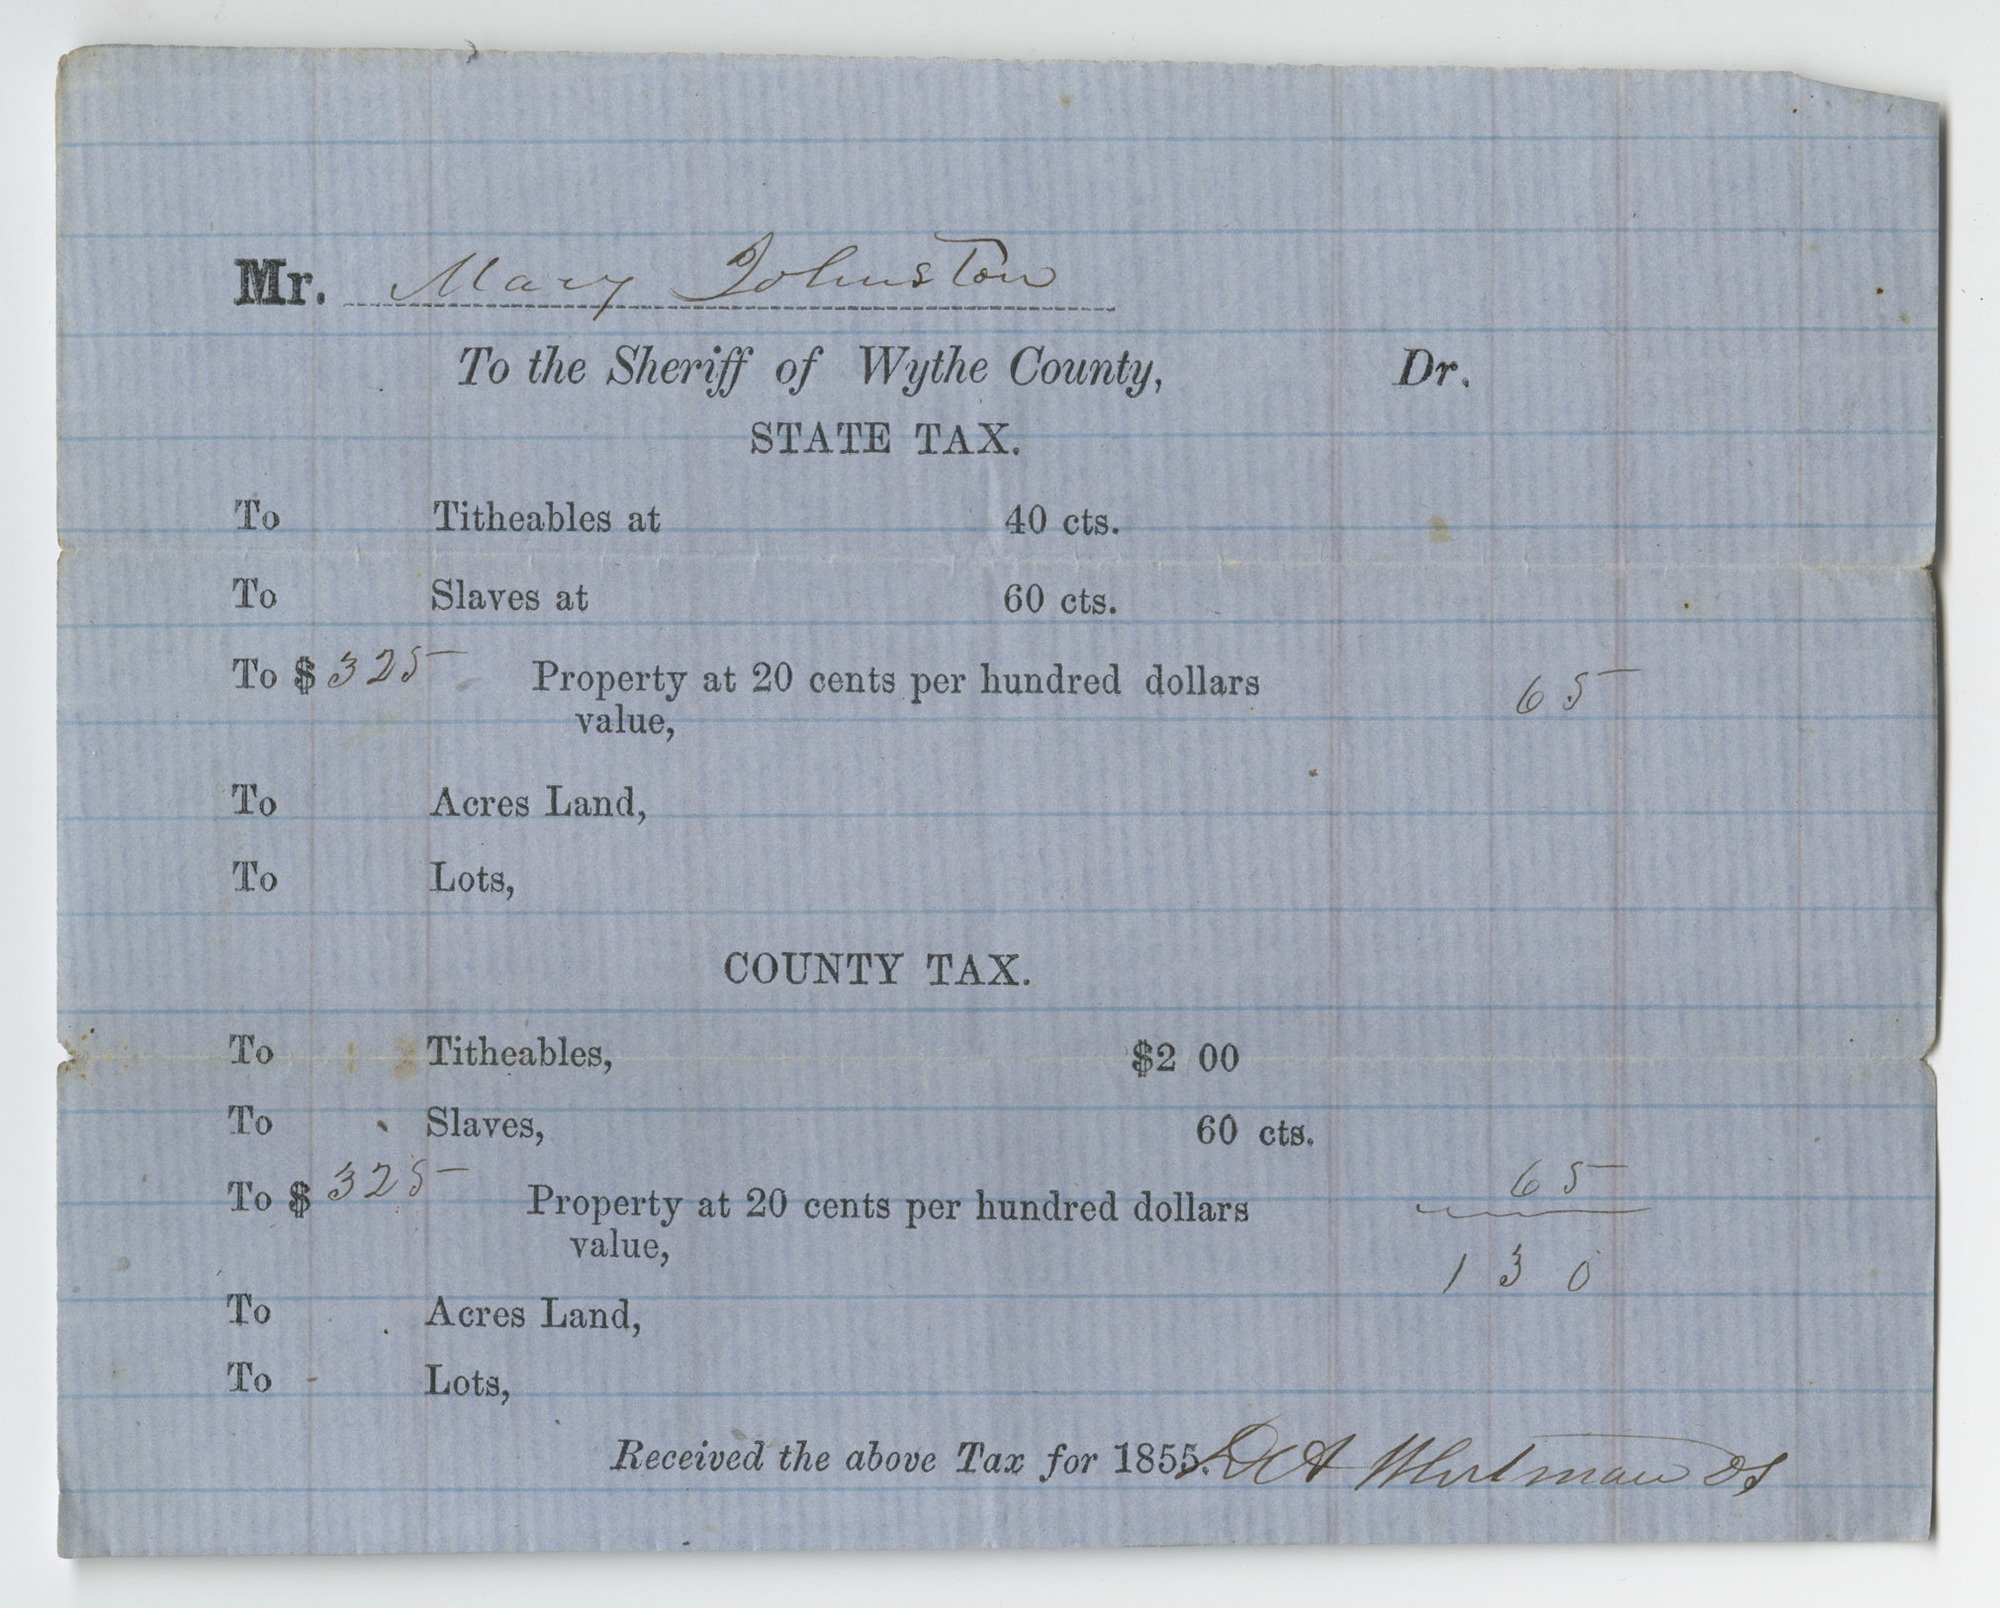 Ms2013_020_YonsonFamily_TaxReceipt1855_034a.jpg